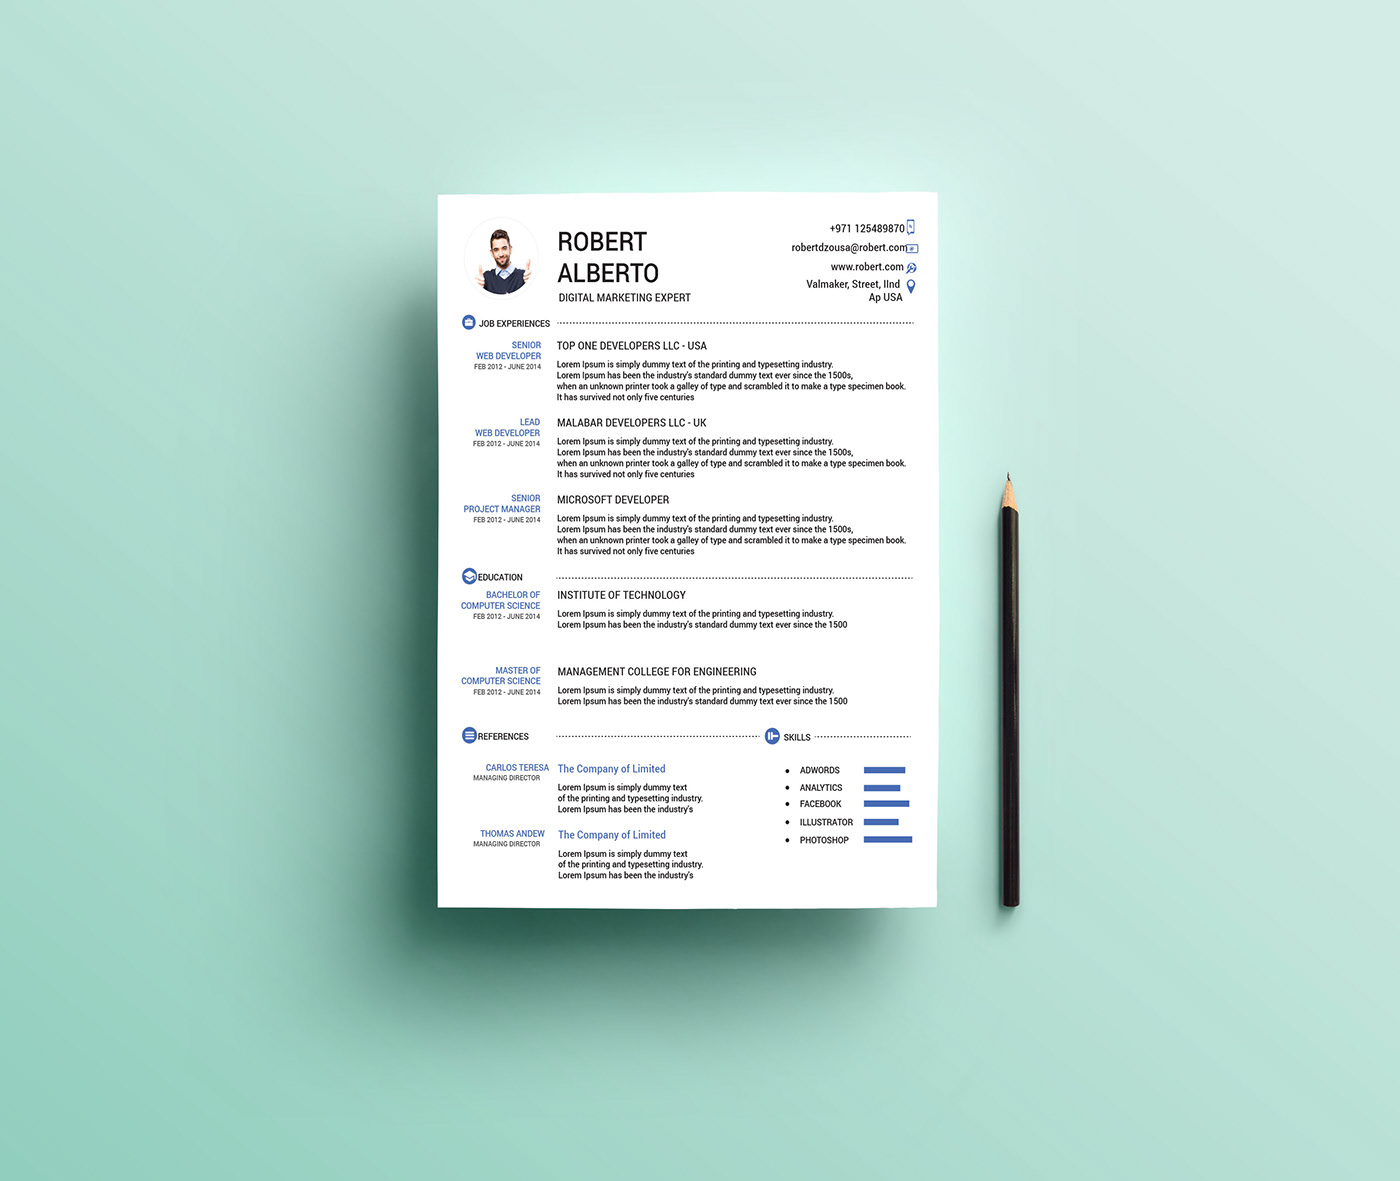 free one resume templates readymade format clean microsoft word template describing Resume Free Readymade Resume Format